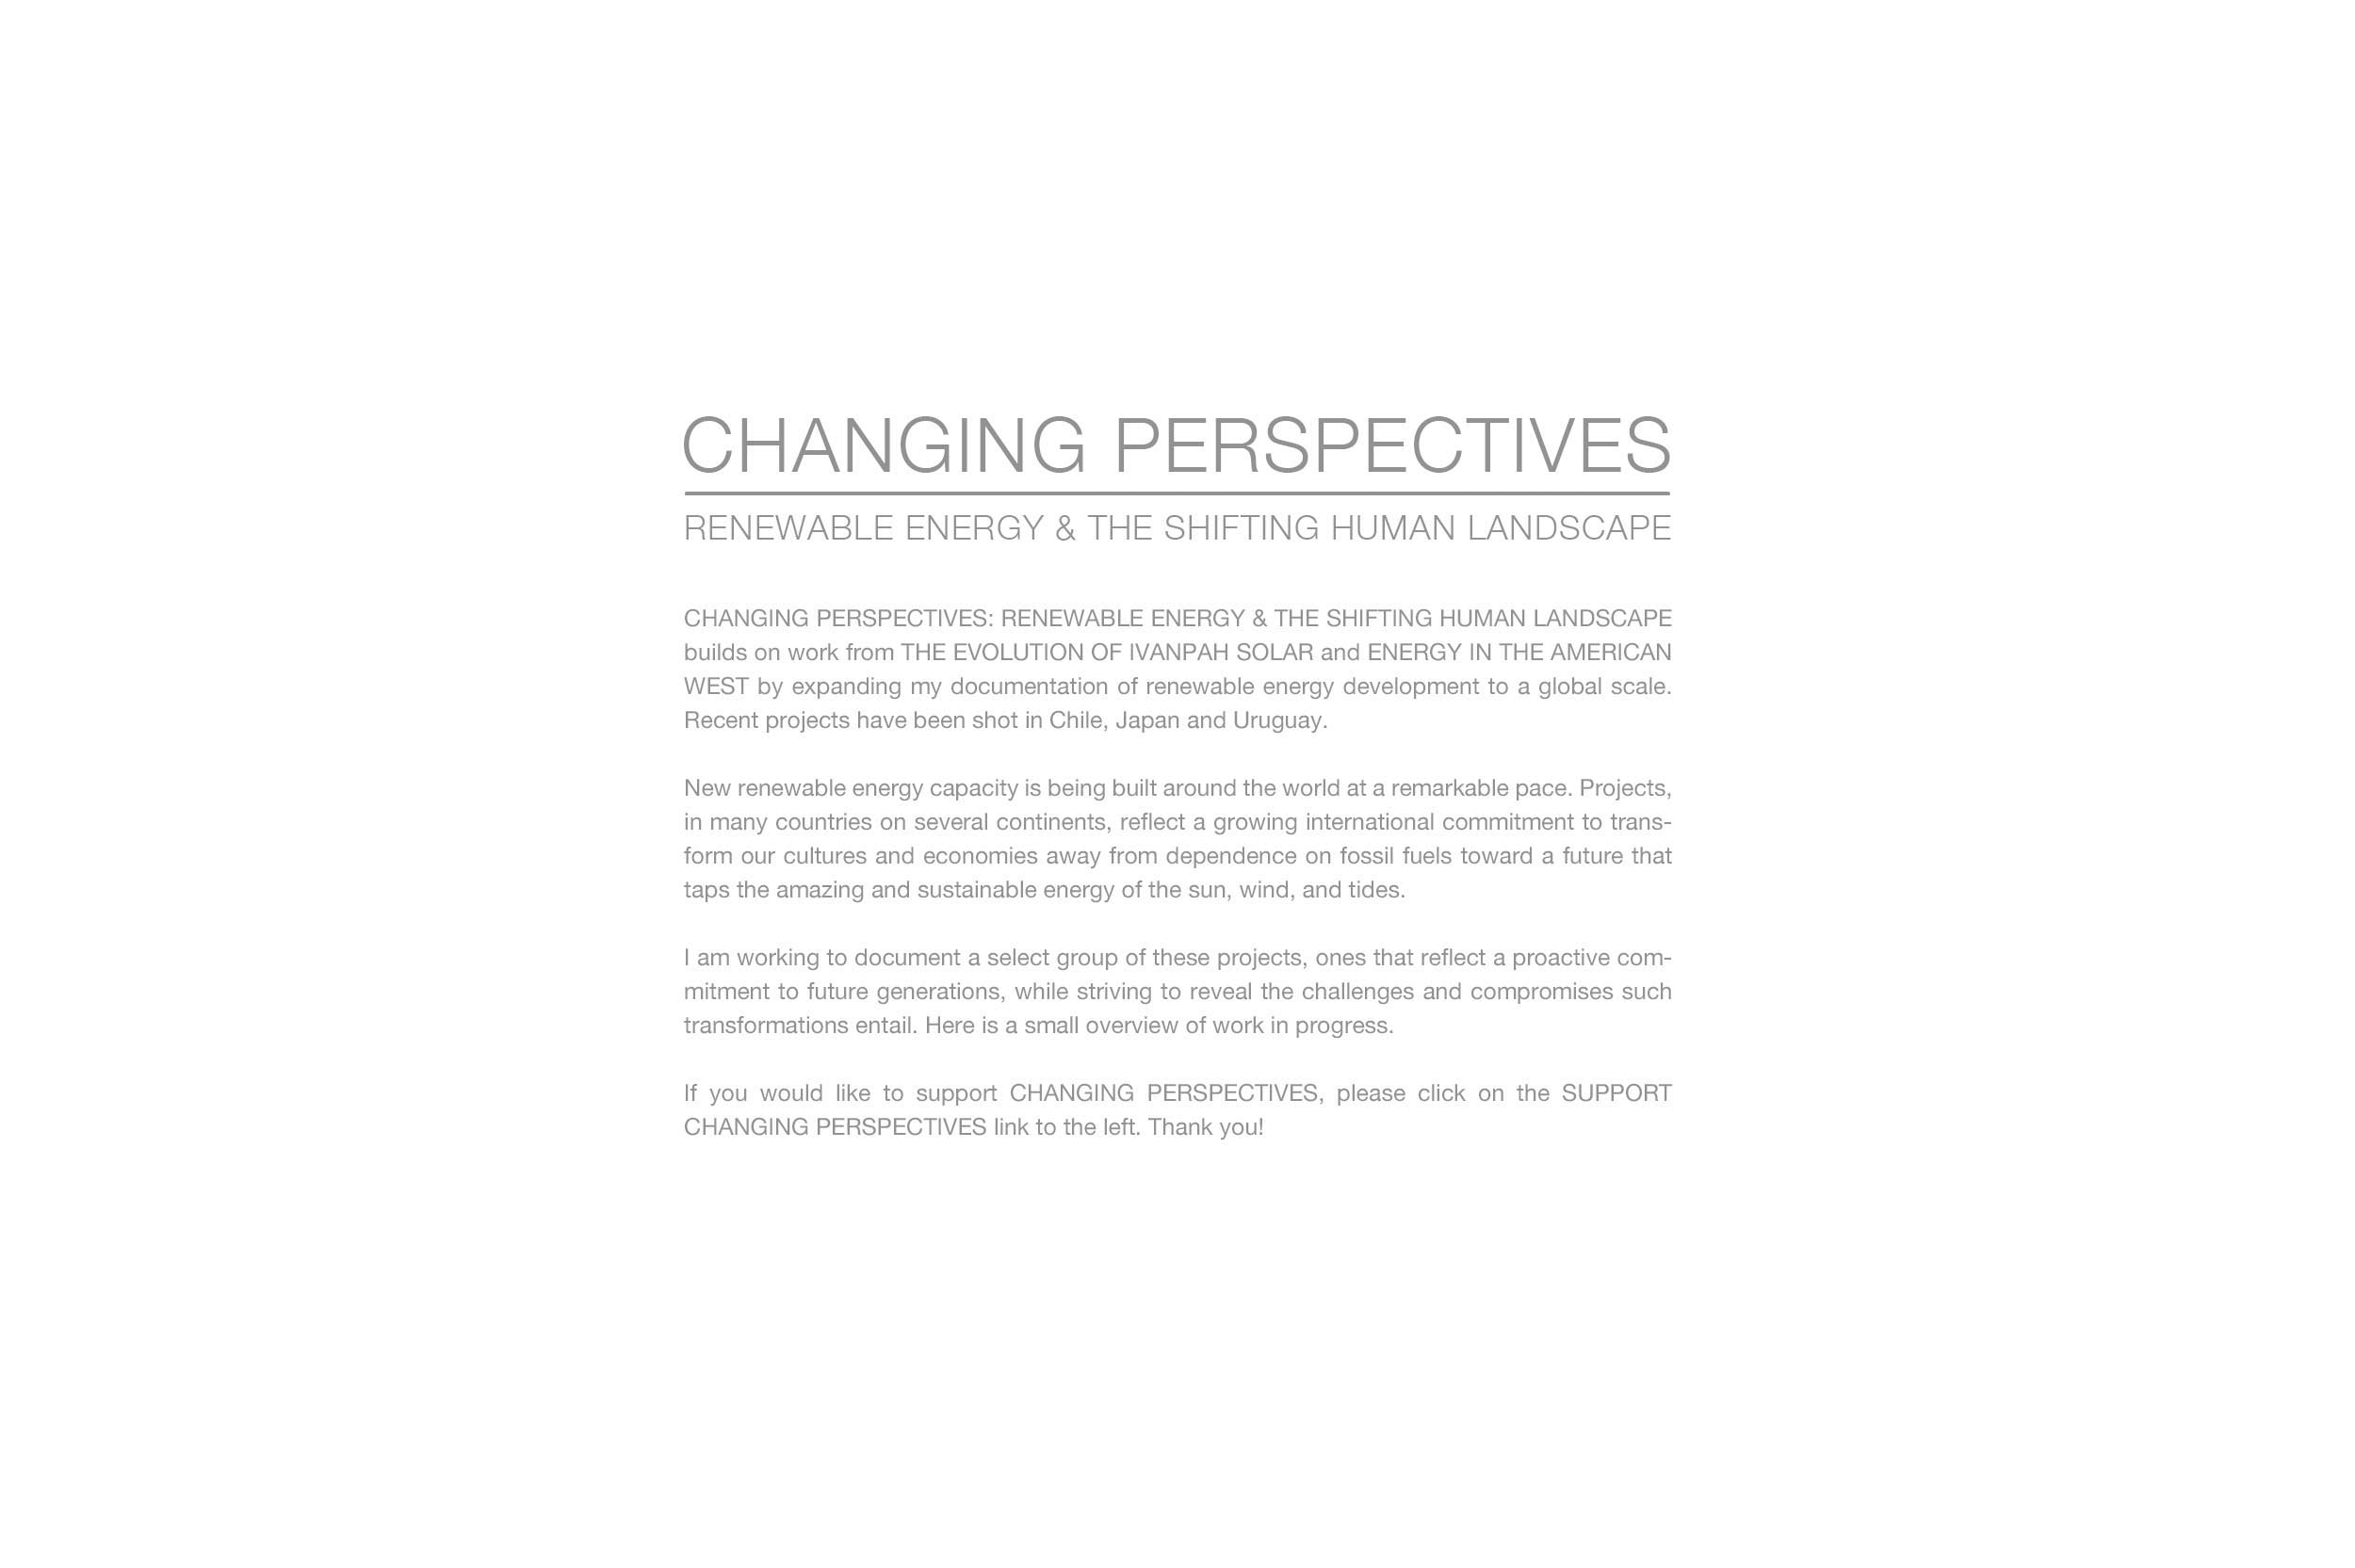 ChangingPerspectivesText20190731b